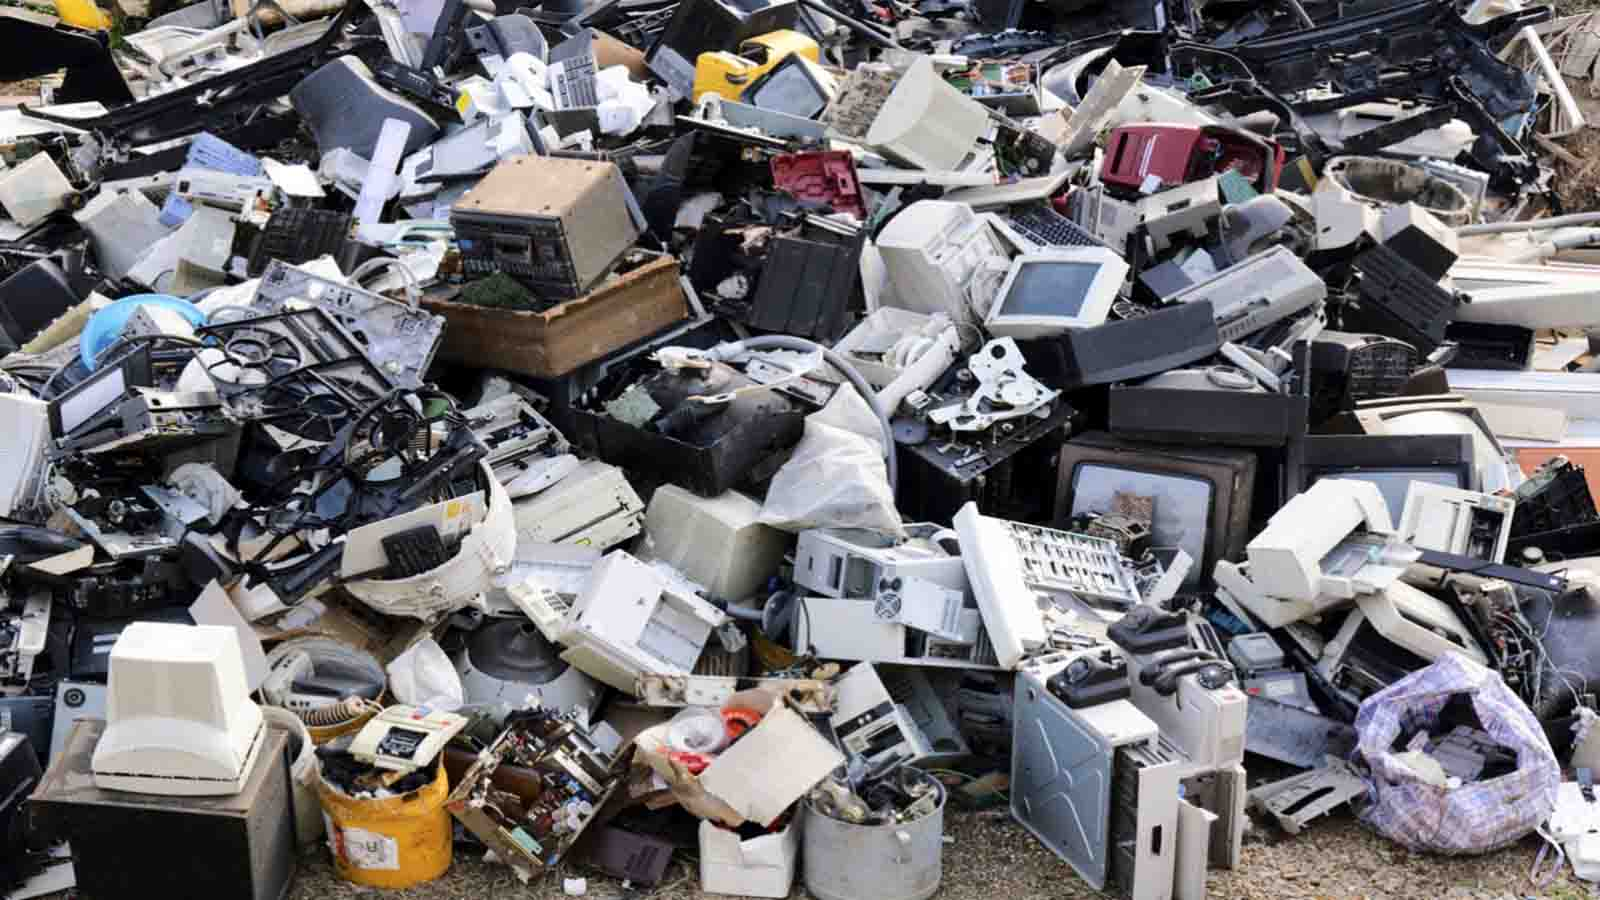 Cal E-Waste Recycle